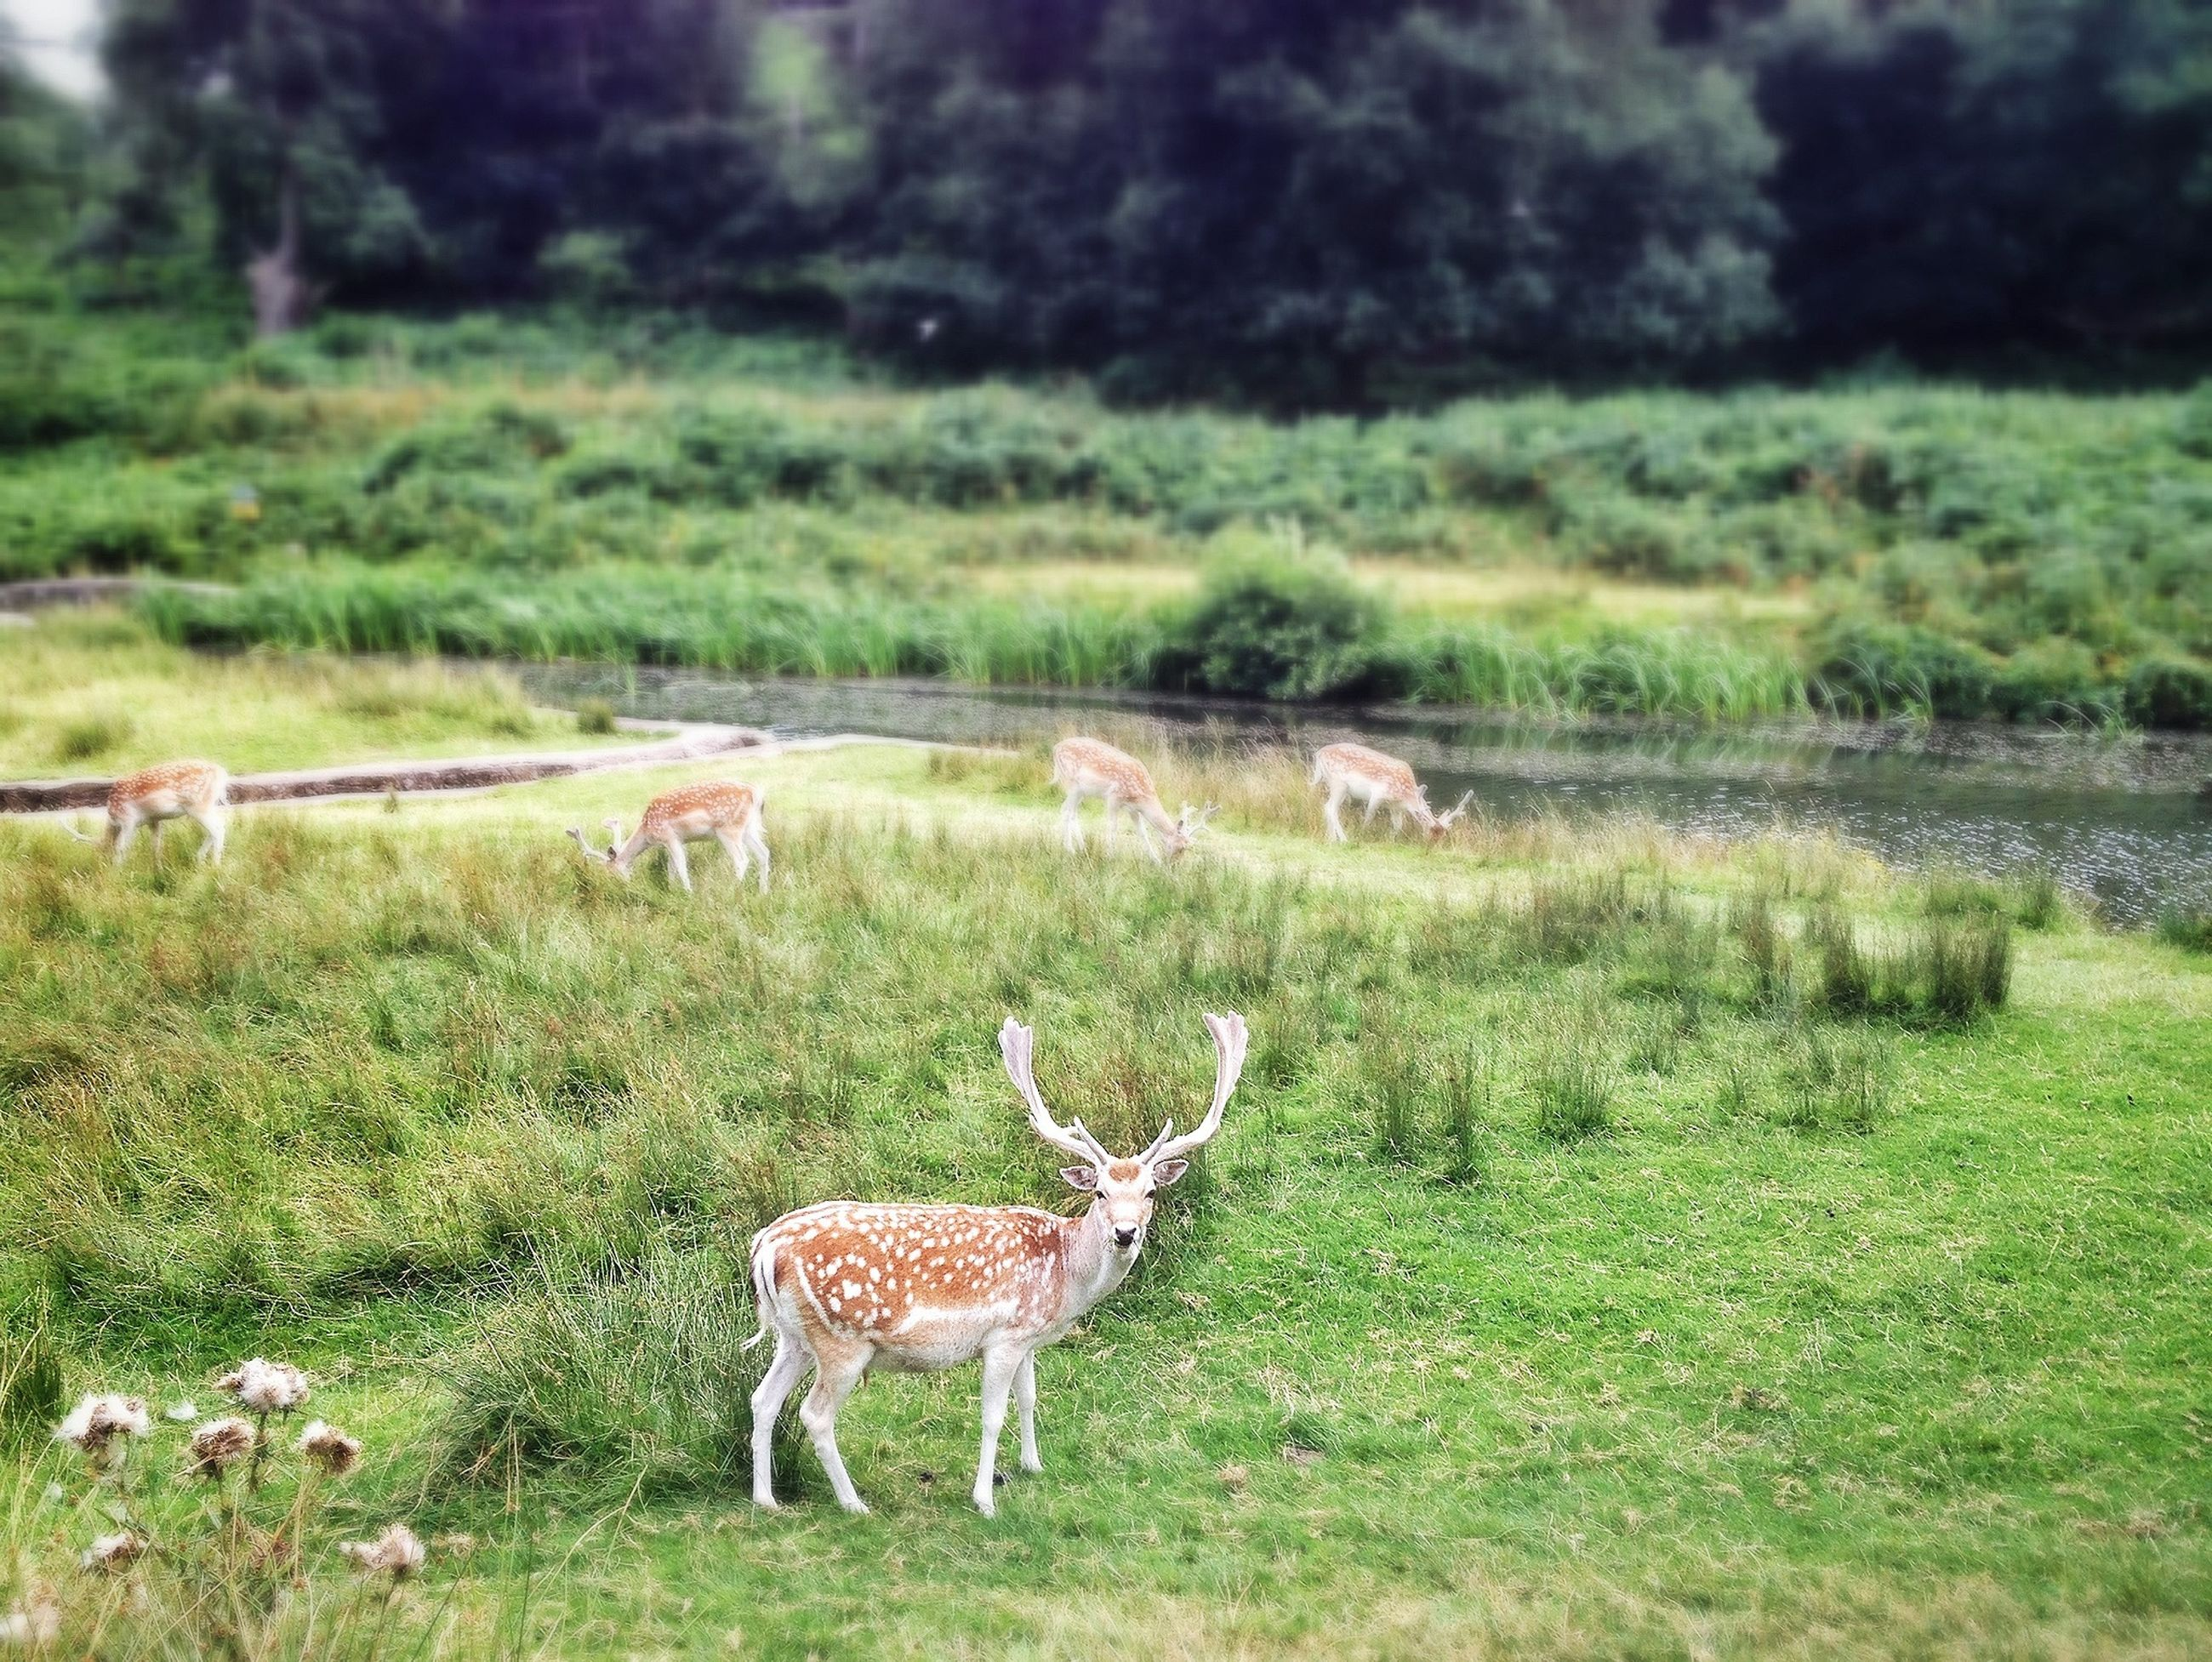 animal themes, grass, animals in the wild, wildlife, field, grassy, green color, nature, landscape, mammal, deer, grazing, standing, beauty in nature, side view, animal family, herbivorous, day, full length, two animals